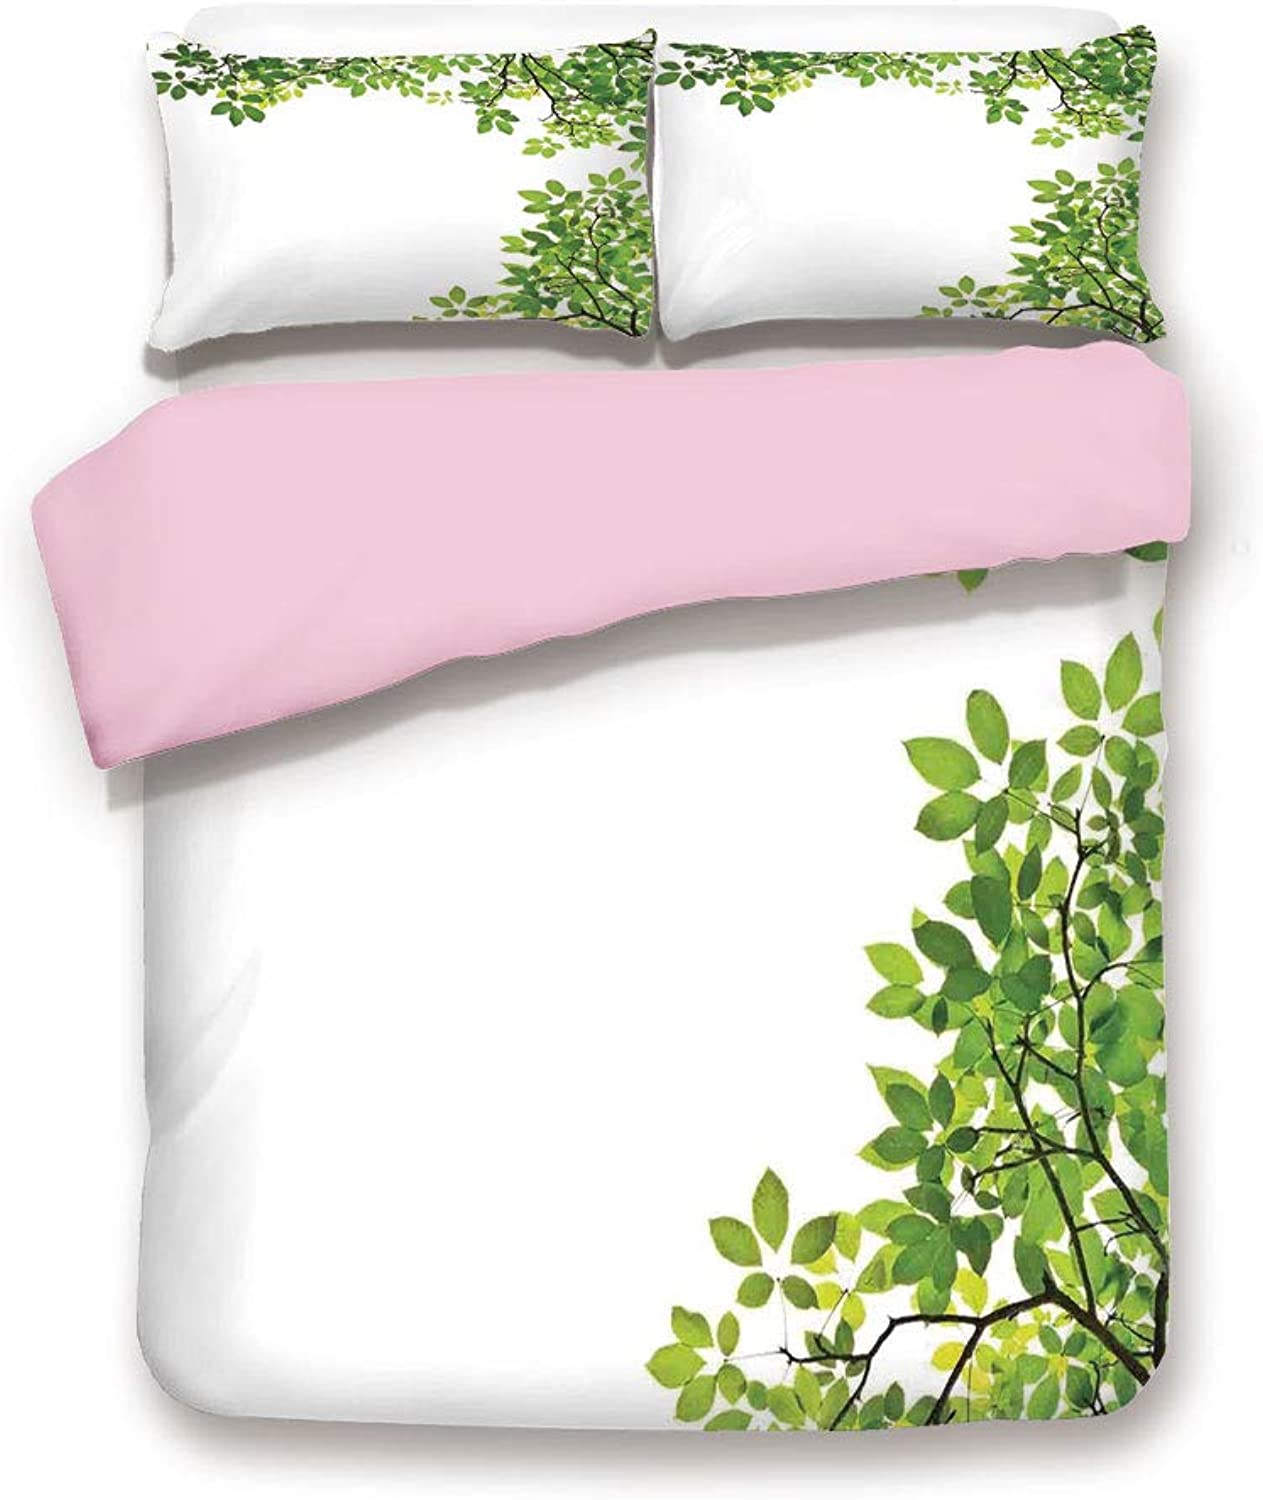 Pink Duvet Cover Set,Twin Size,Broad Leaves Close up Background Garden Organic Foliage Shrubs Cells Plant Image,Decorative 3 Piece Bedding Set with 2 Pillow Sham,Best Gift for Girls Women,Green White